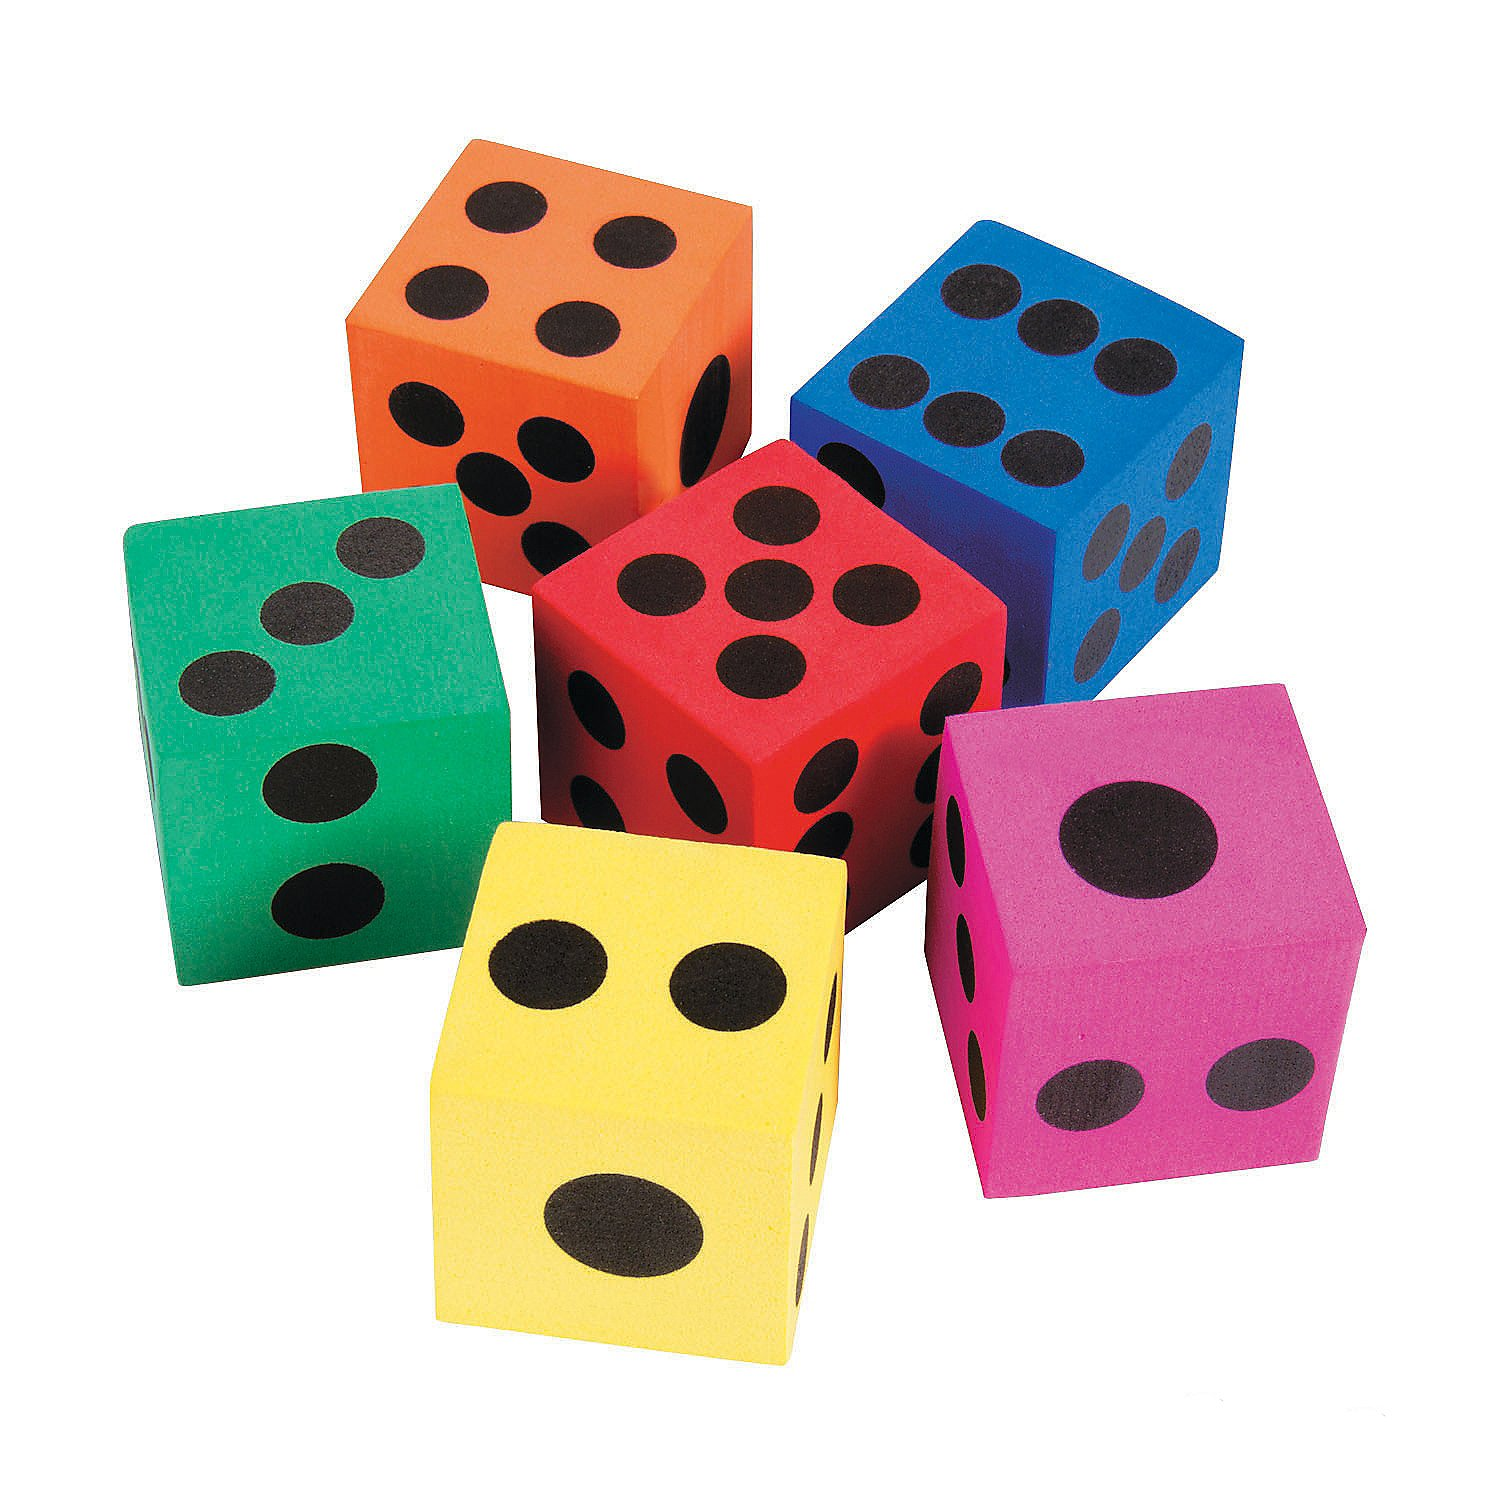 """Kidsco Big Foam Dices - Pack of 12 - 1.5"""" Square, Assorted Colors - Great for Playing Games - for Kids Boys and Girls Party Favors, Bag Stuffers, Fun, Toy, Gift, Prize, Piñata Fillers"""